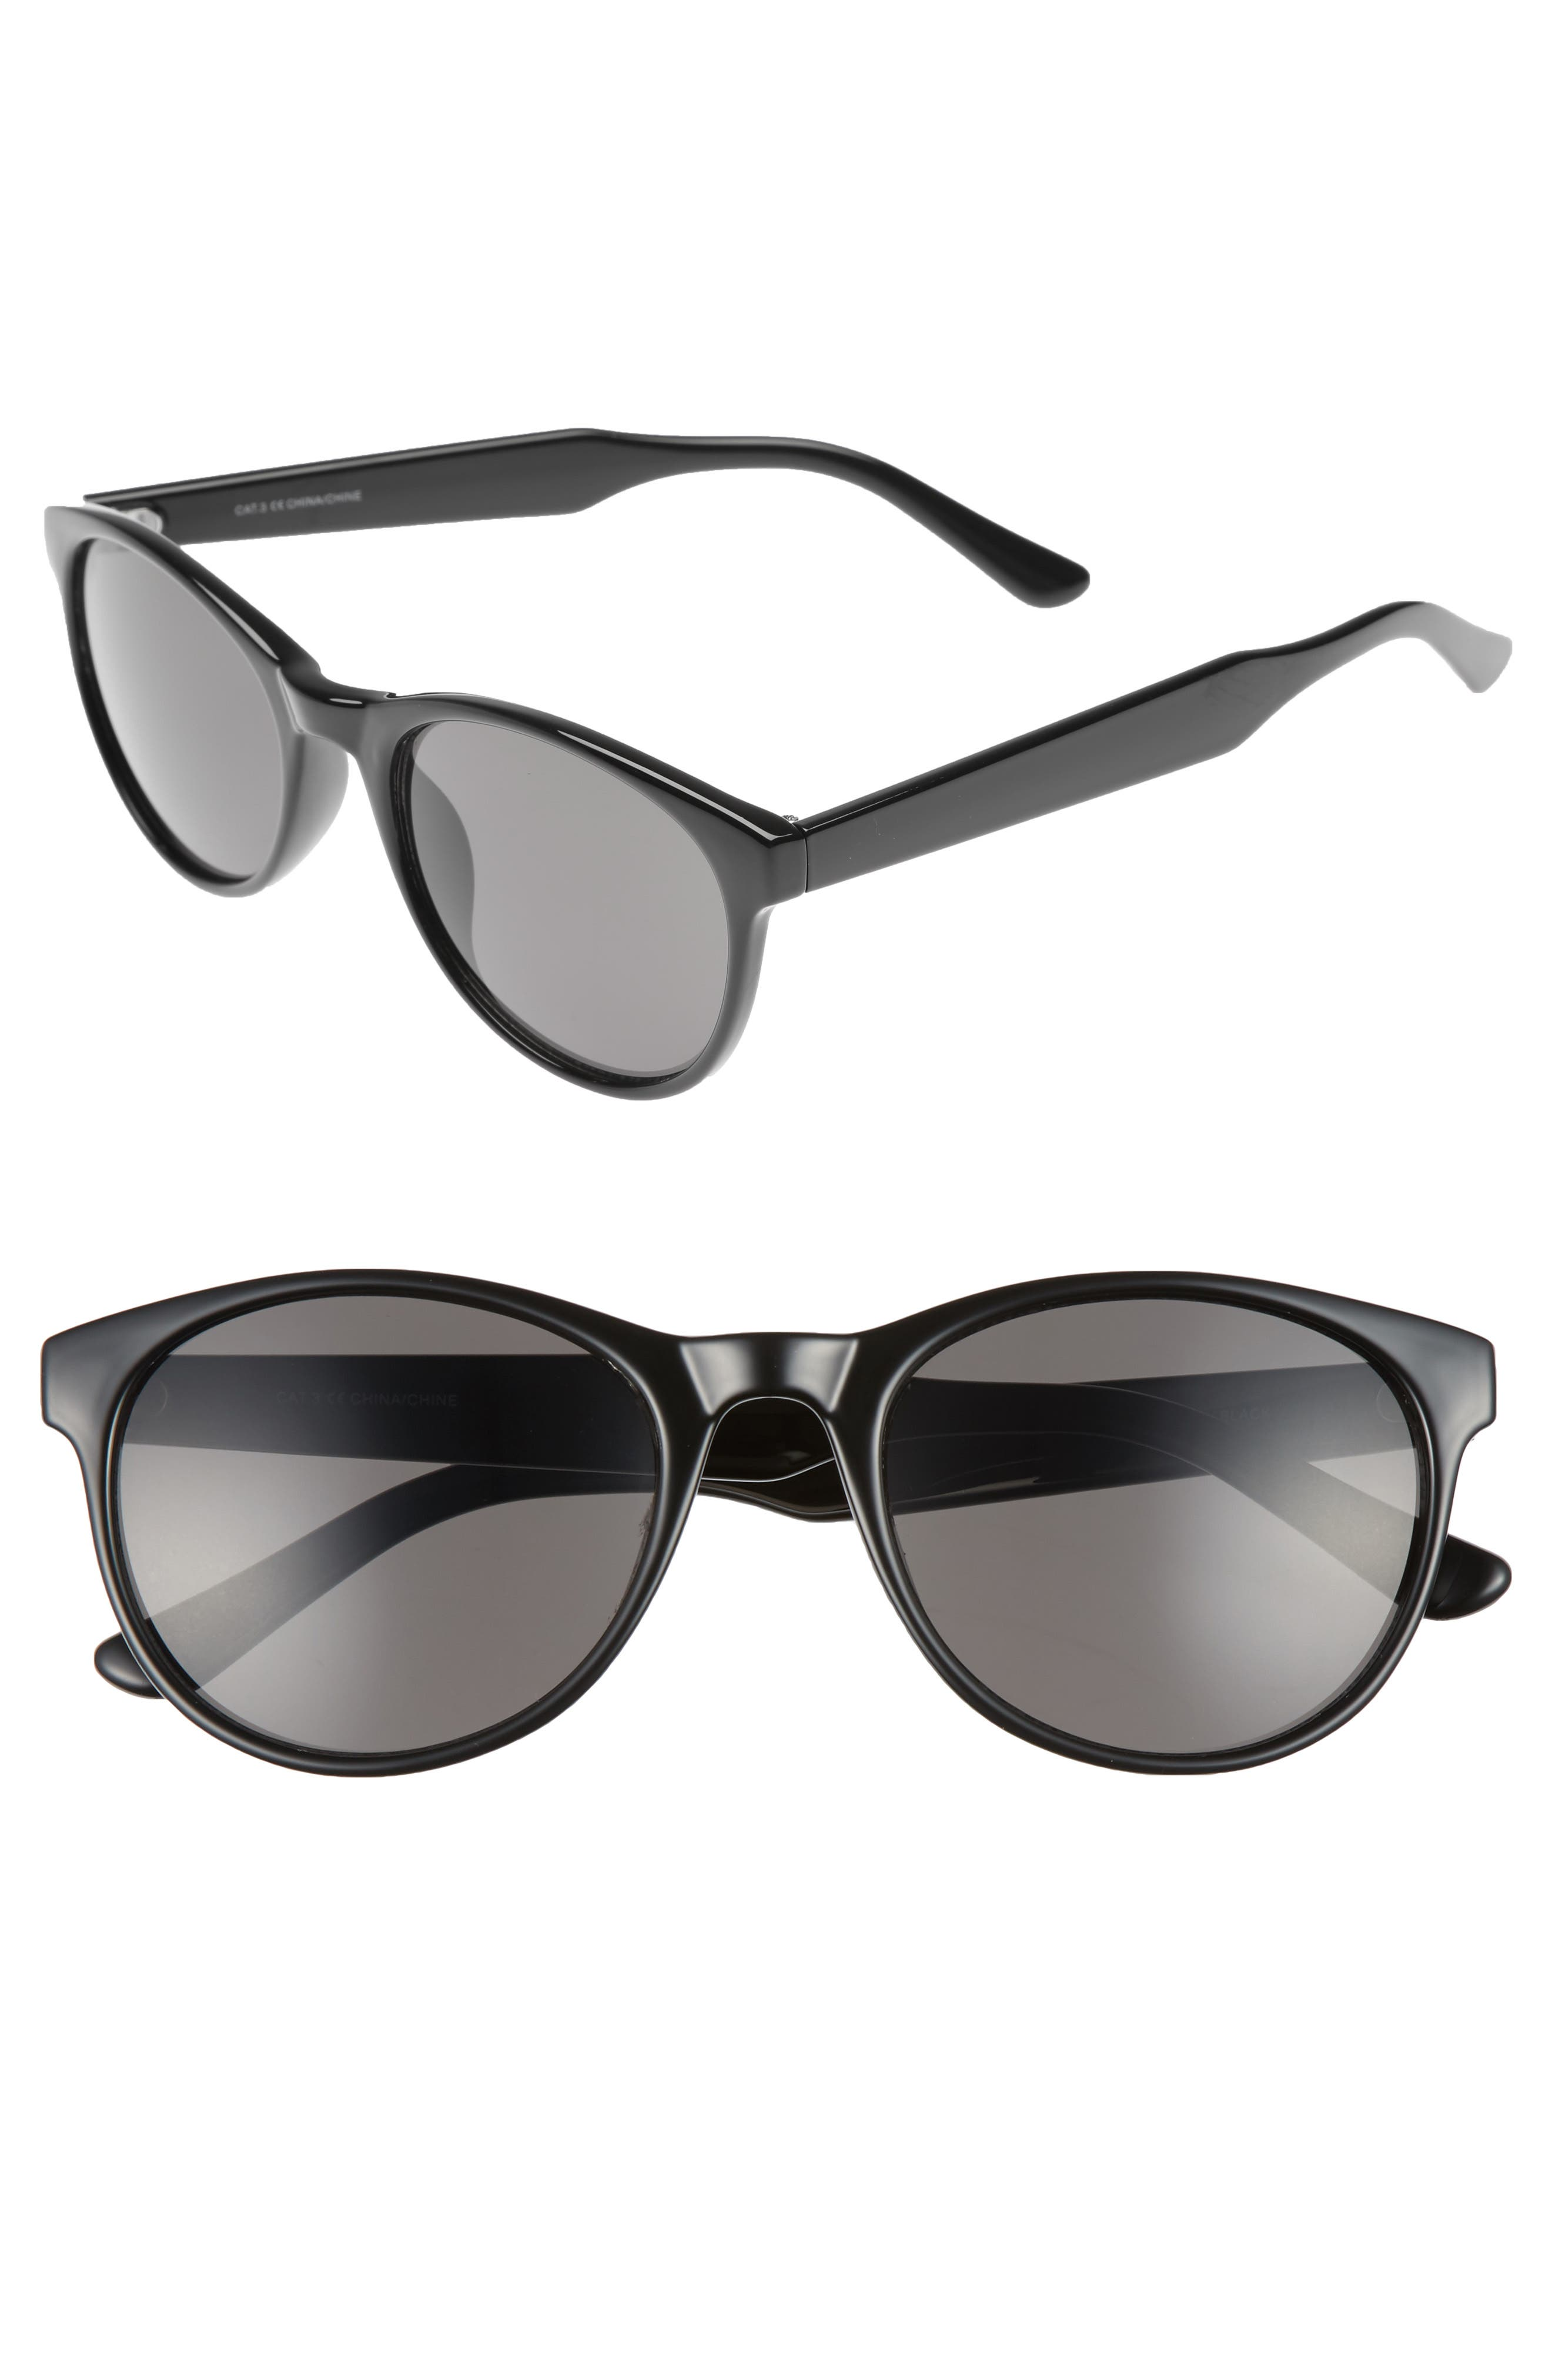 Victor 54mm Sunglasses,                         Main,                         color, BLACK/ GREY